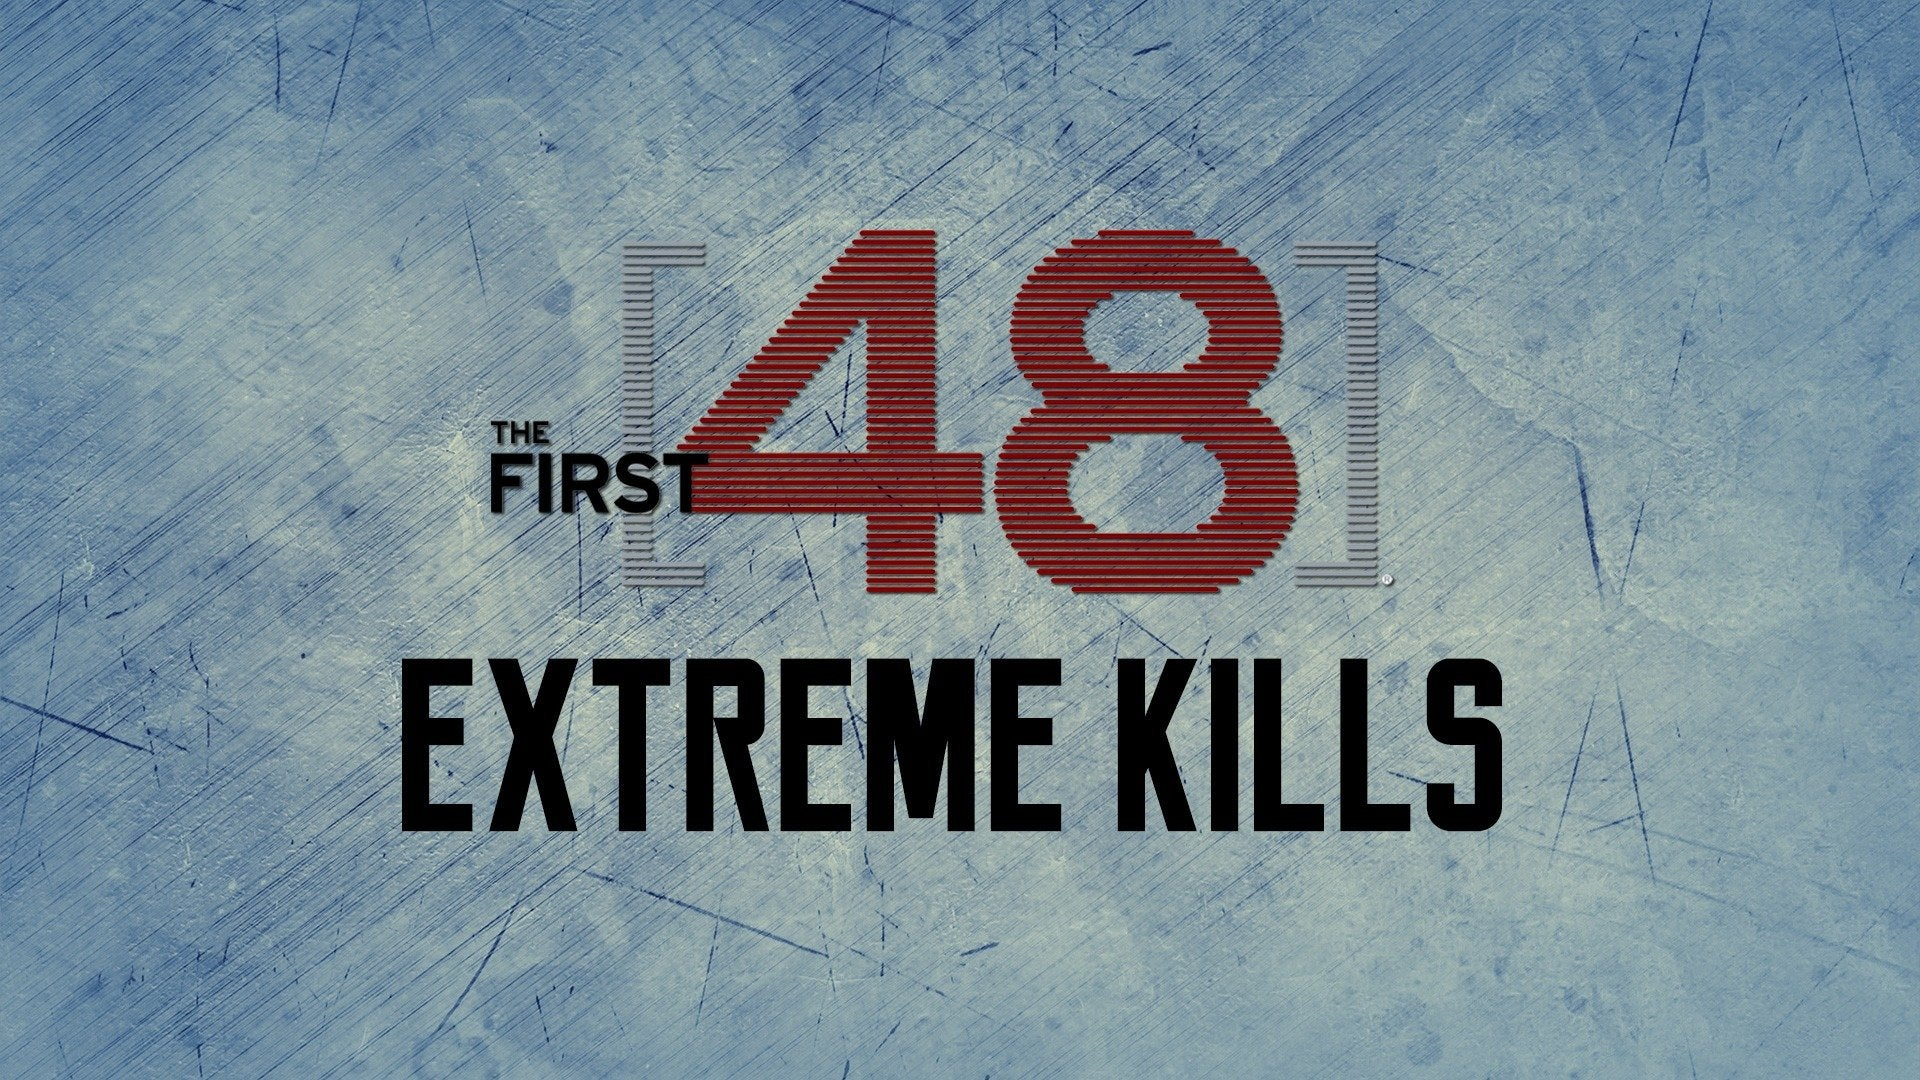 The First 48: Extreme Kills